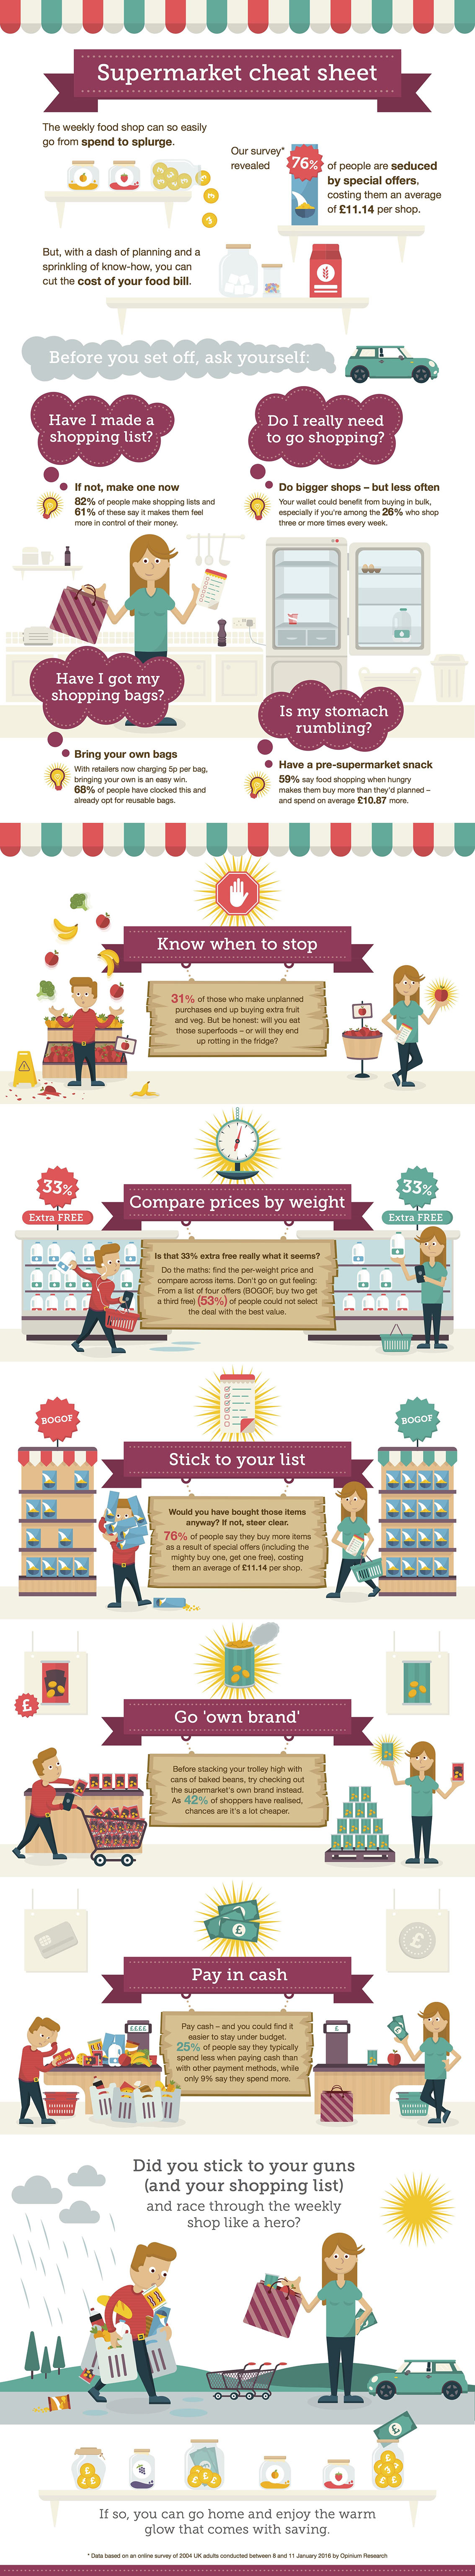 Supermarket Guide for Grocery Shoppers Infographic